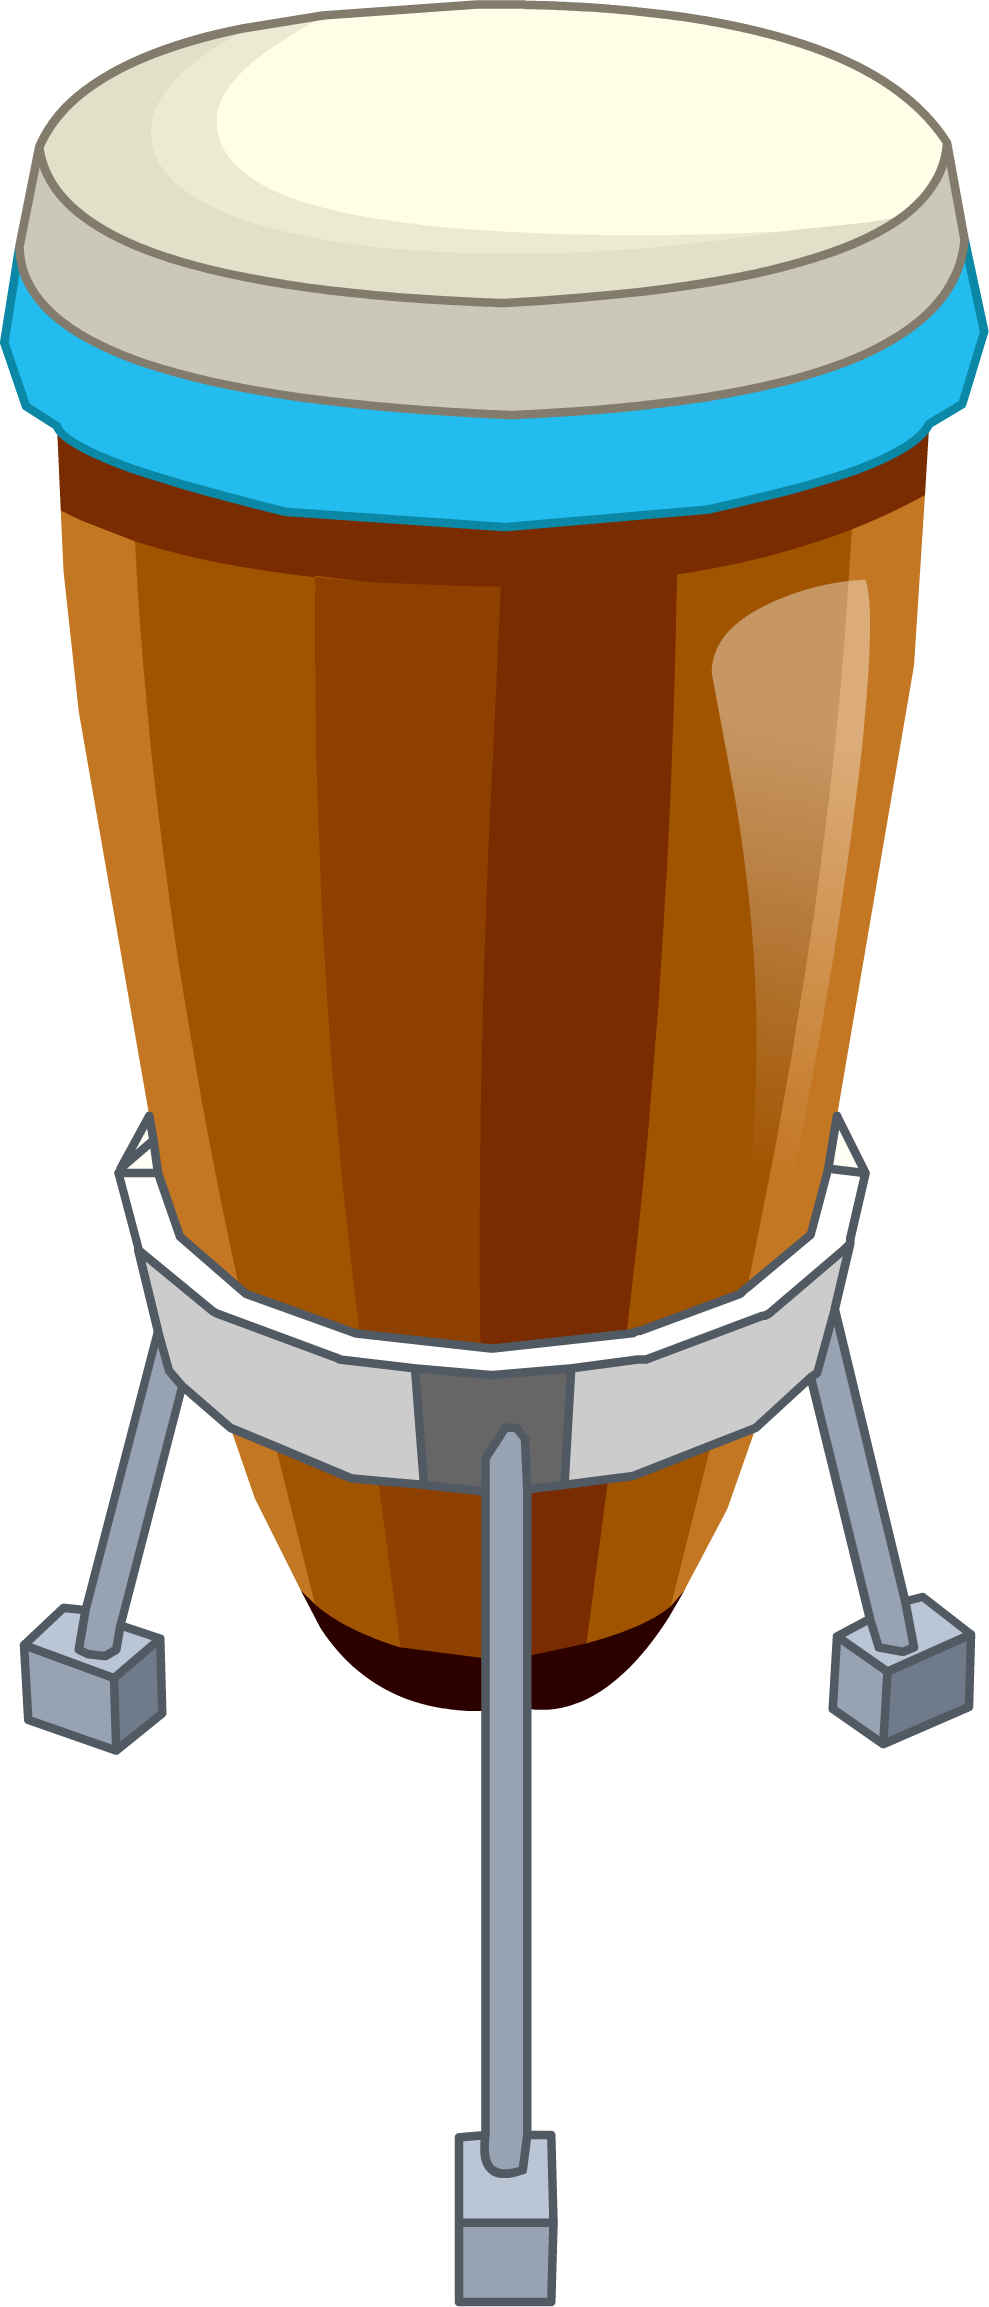 Image conga icon png. Drum clipart drum roll